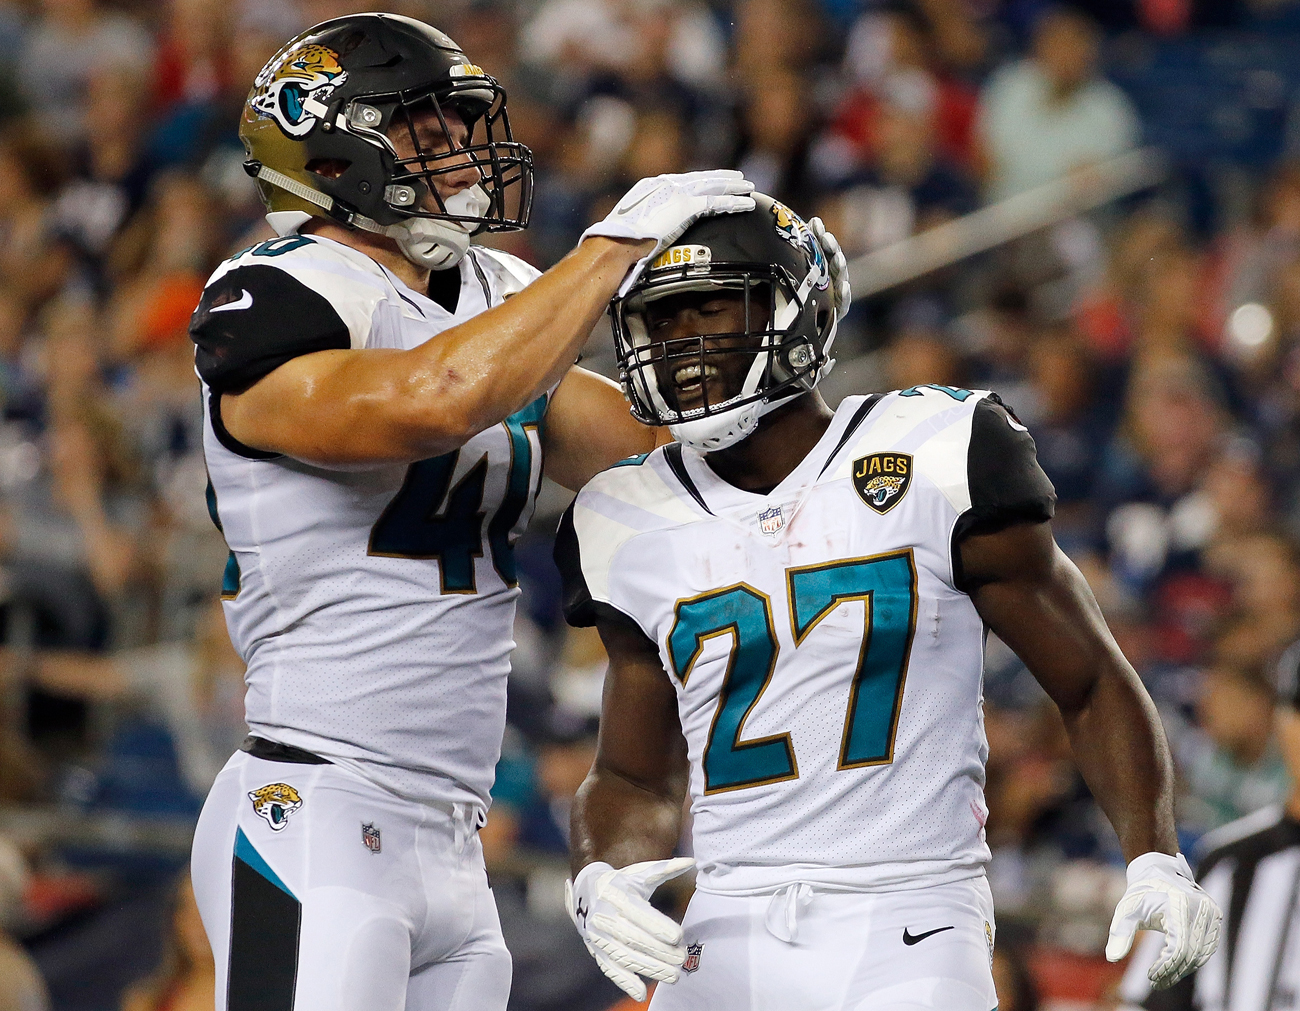 Jaguars rookie running back Leonard Fournette made some eyebrow-raising comments about the speed of the NFL.